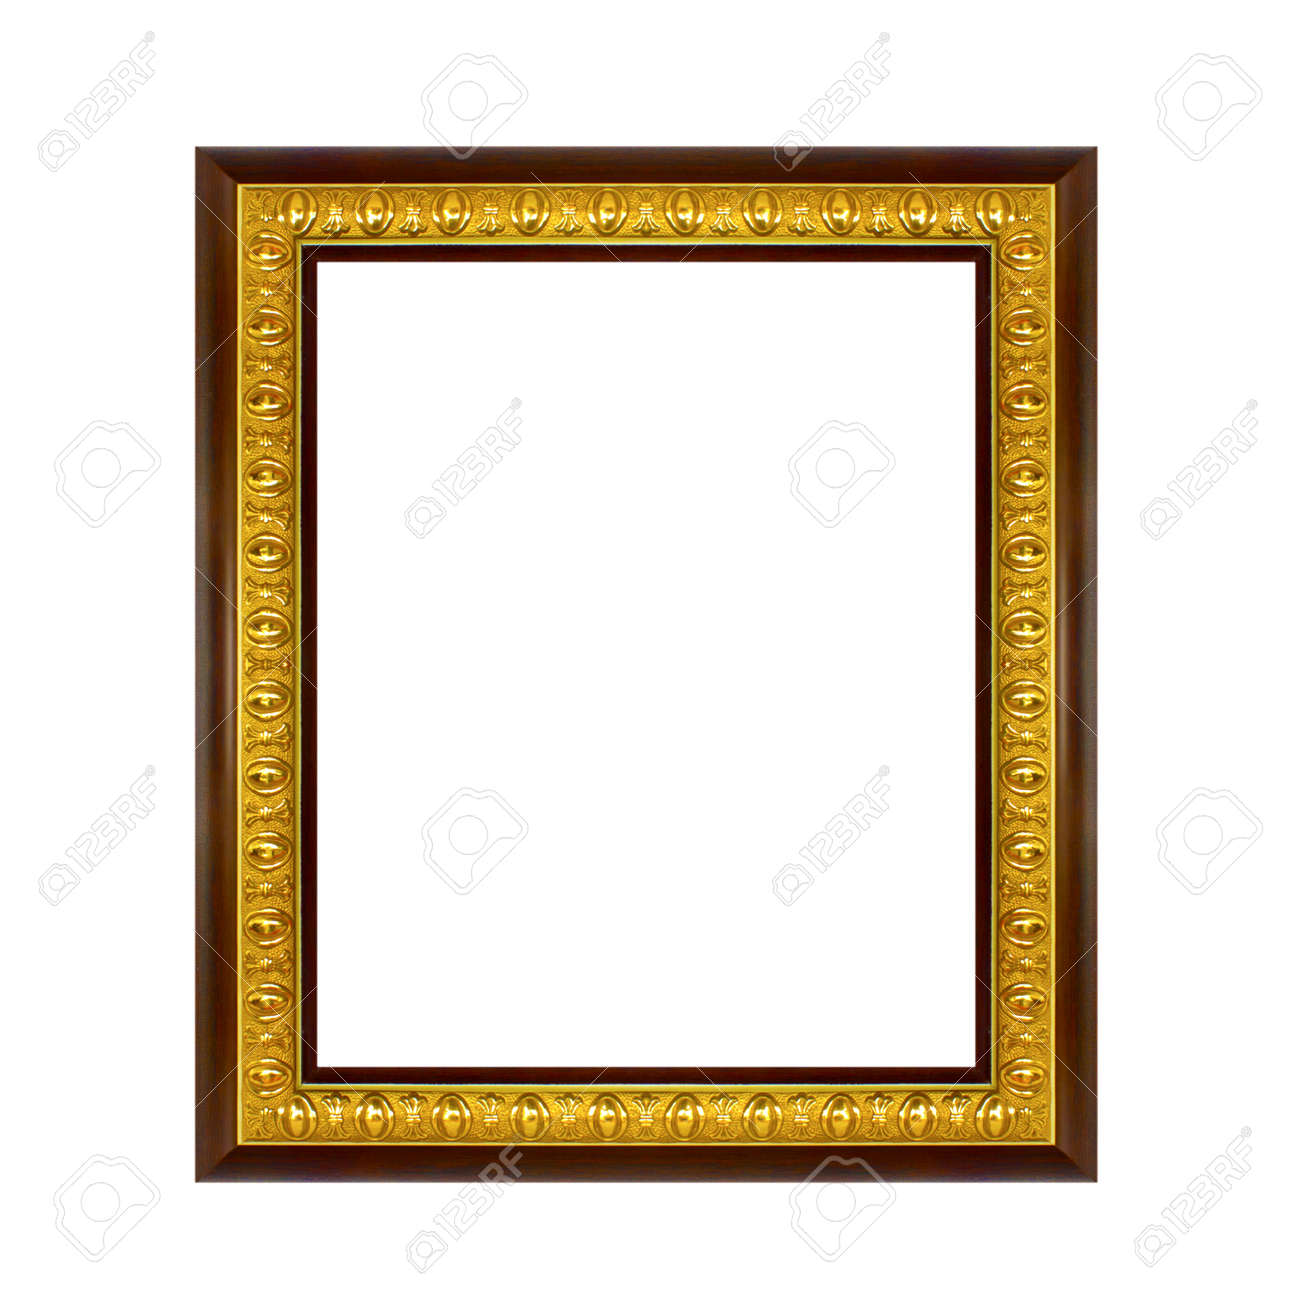 The frame isolated on the white background Stock Photo - 15146352